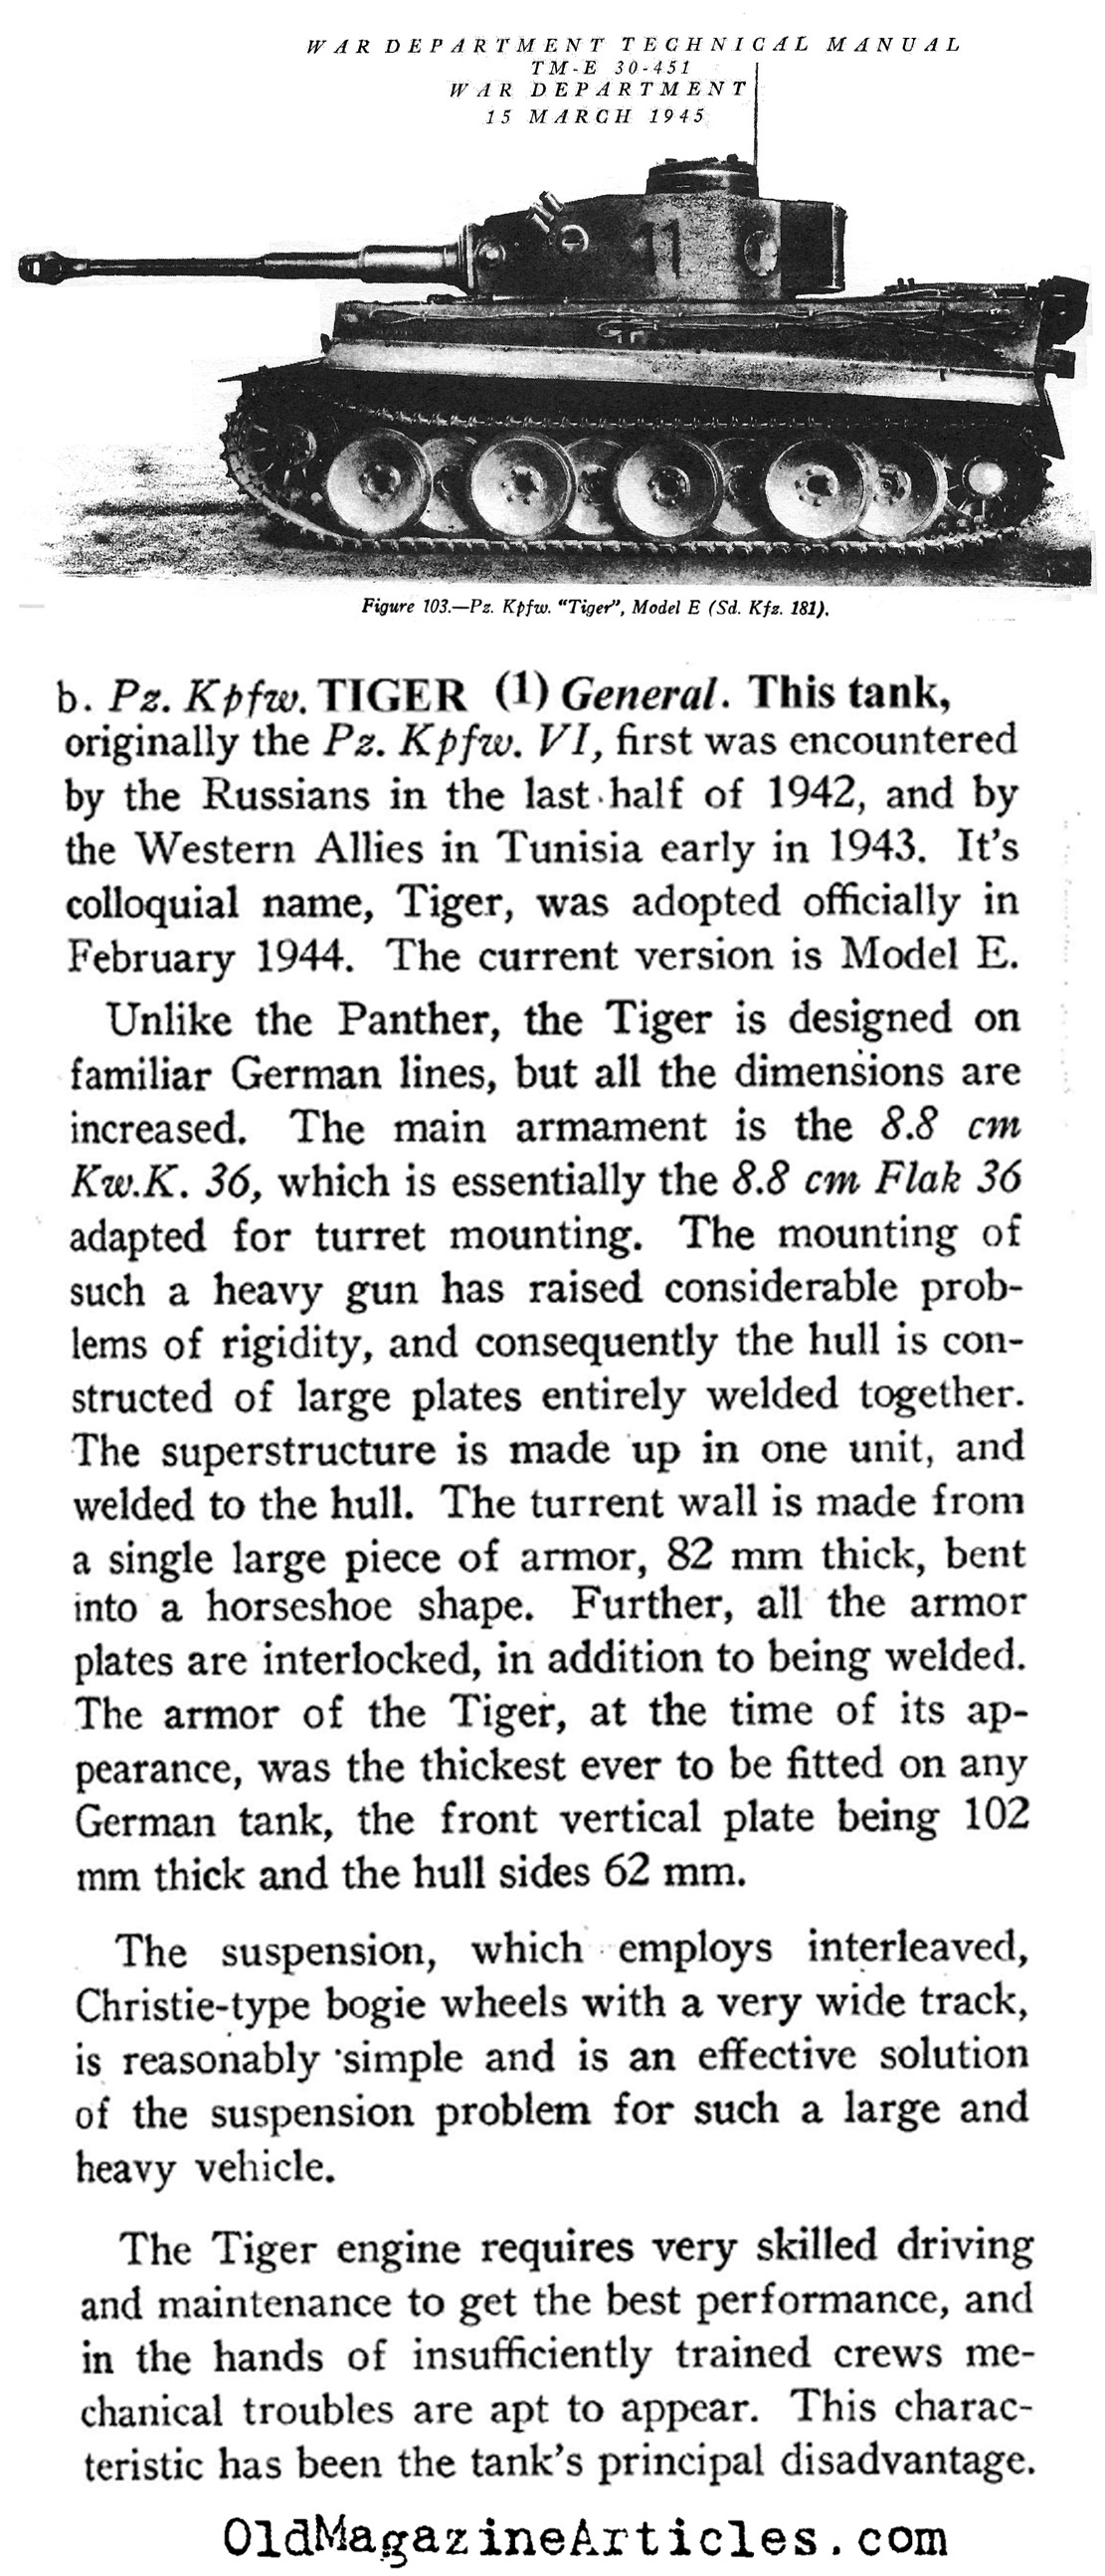 A Study of the German Tiger Tank (The U.S. War Department, 1945)